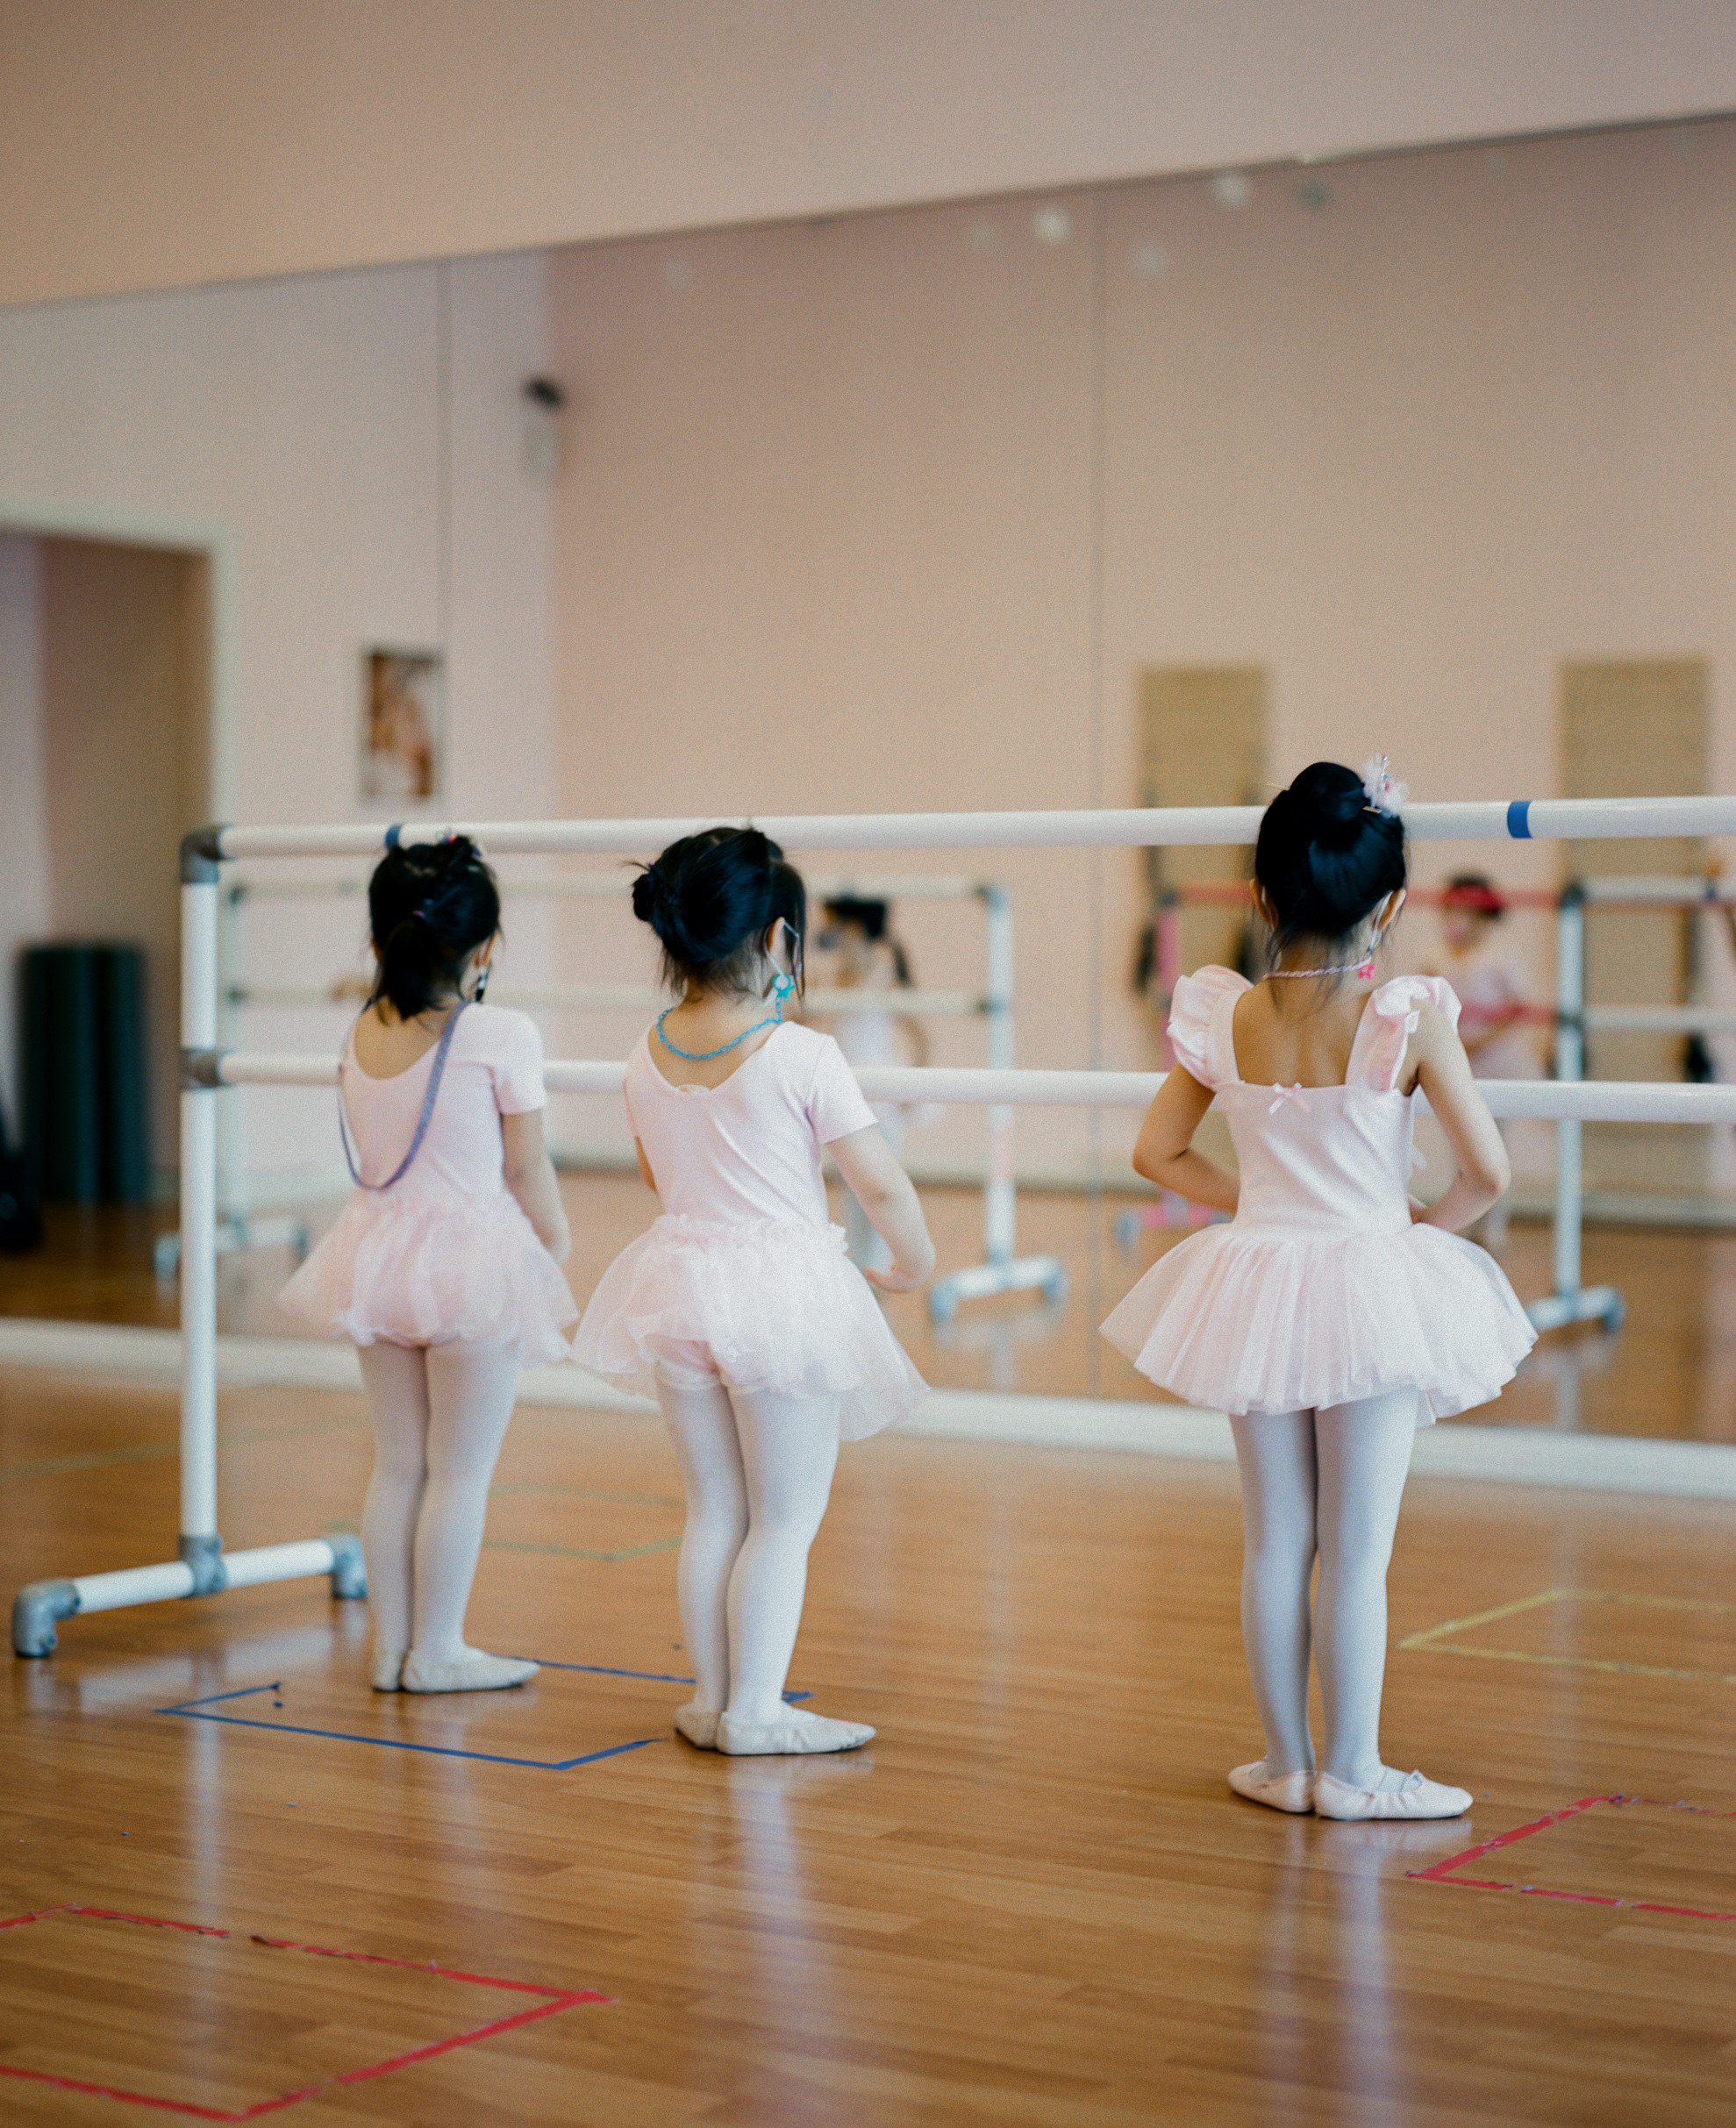 Three young girls in ballet costumes in a classroom